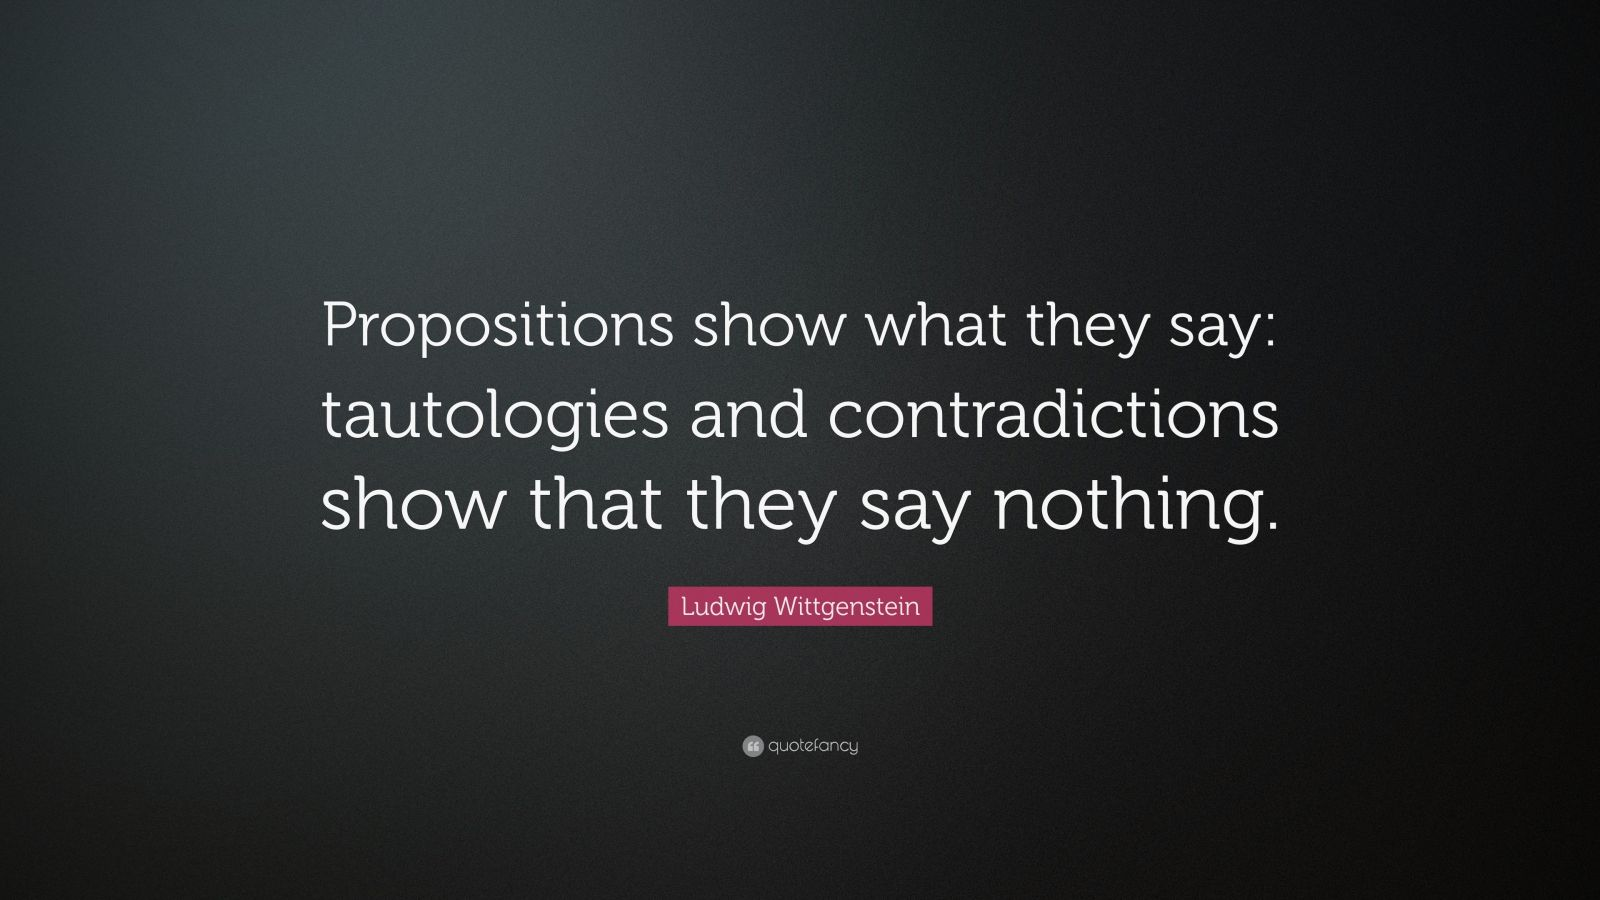 """Ludwig Wittgenstein Quote: """"Propositions show what they say: tautologies and contradictions show that they say nothing."""""""